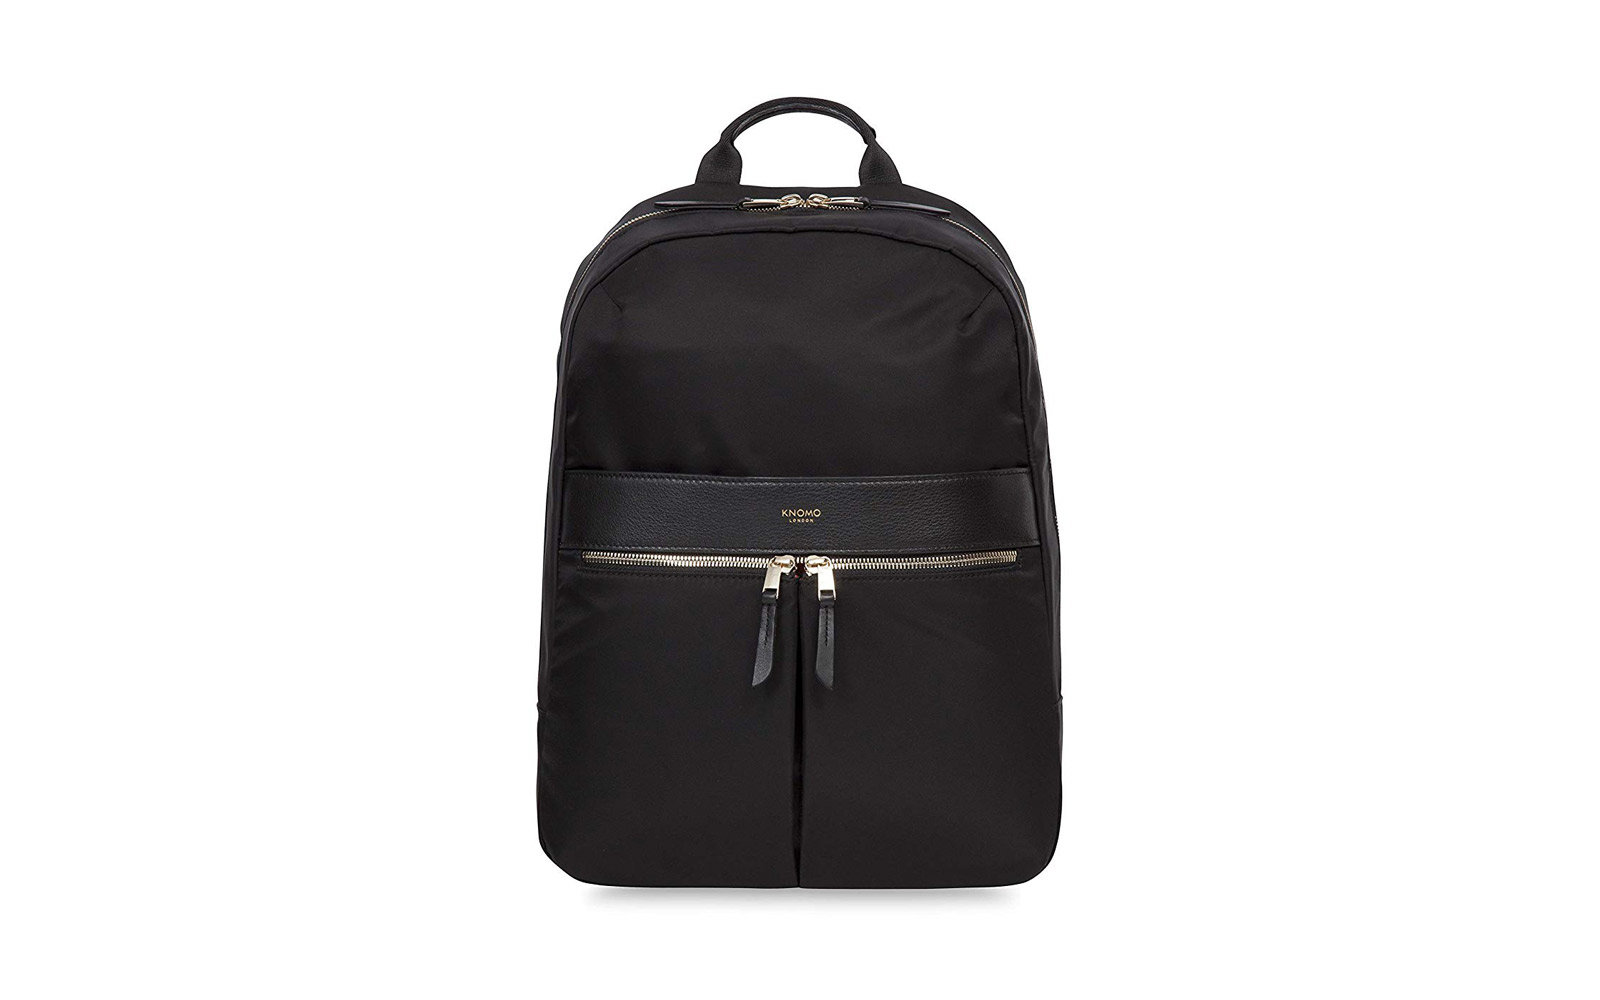 b73520f4fd Knomo London Mayfair Nylon Beauchamp Backpack